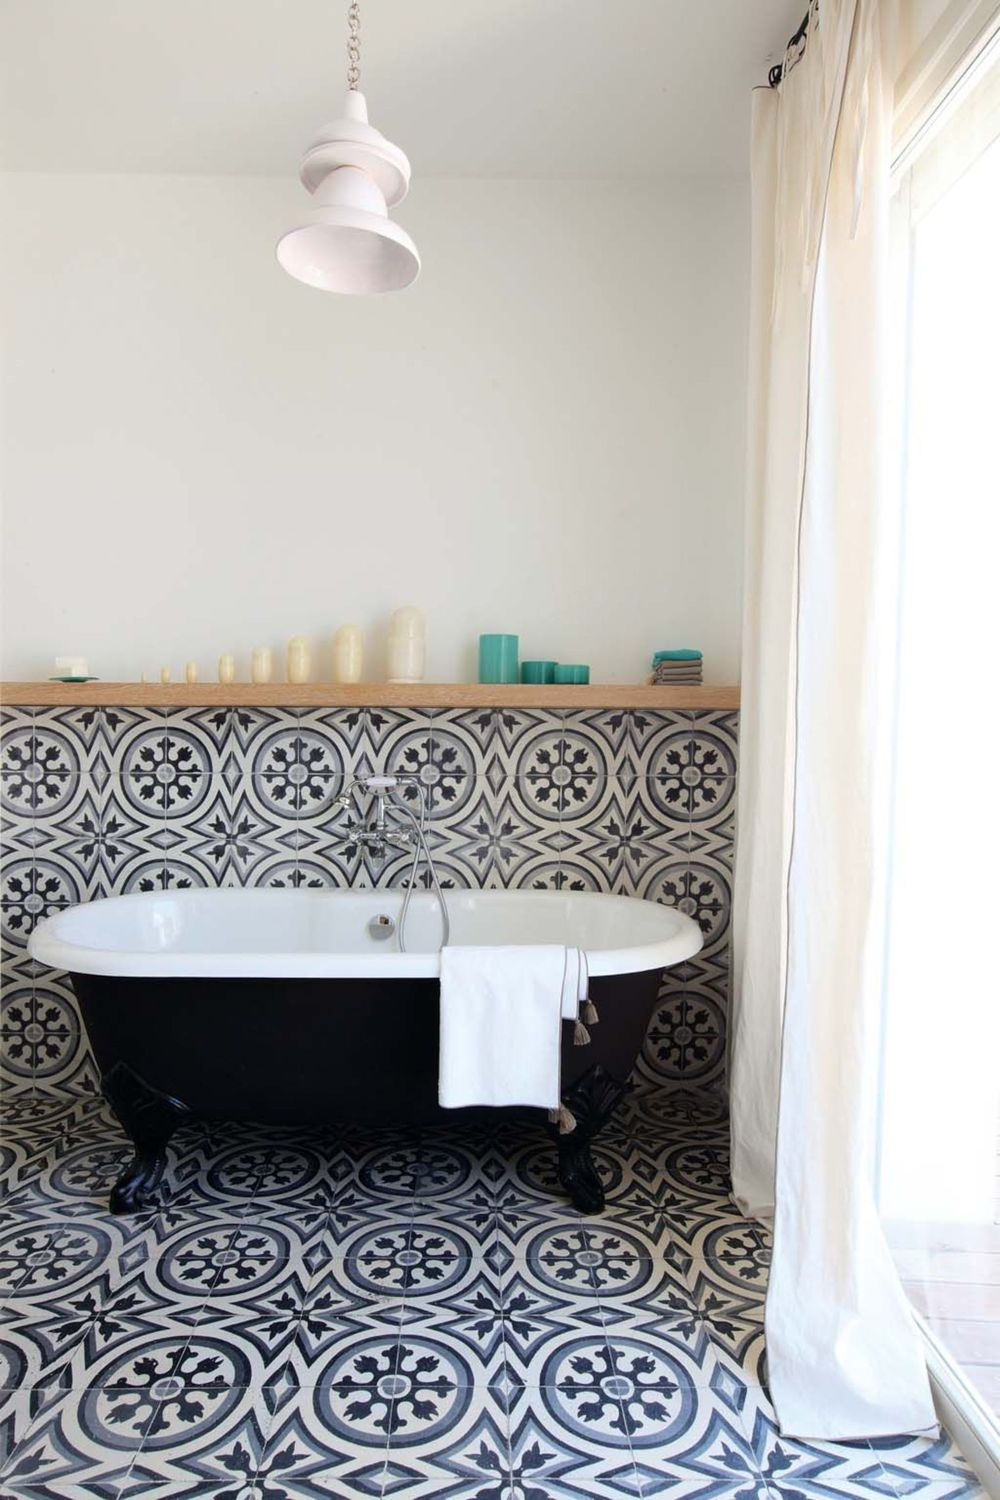 Une salle de bain en carreaux de ciment frenchy fancy for Photo sdb